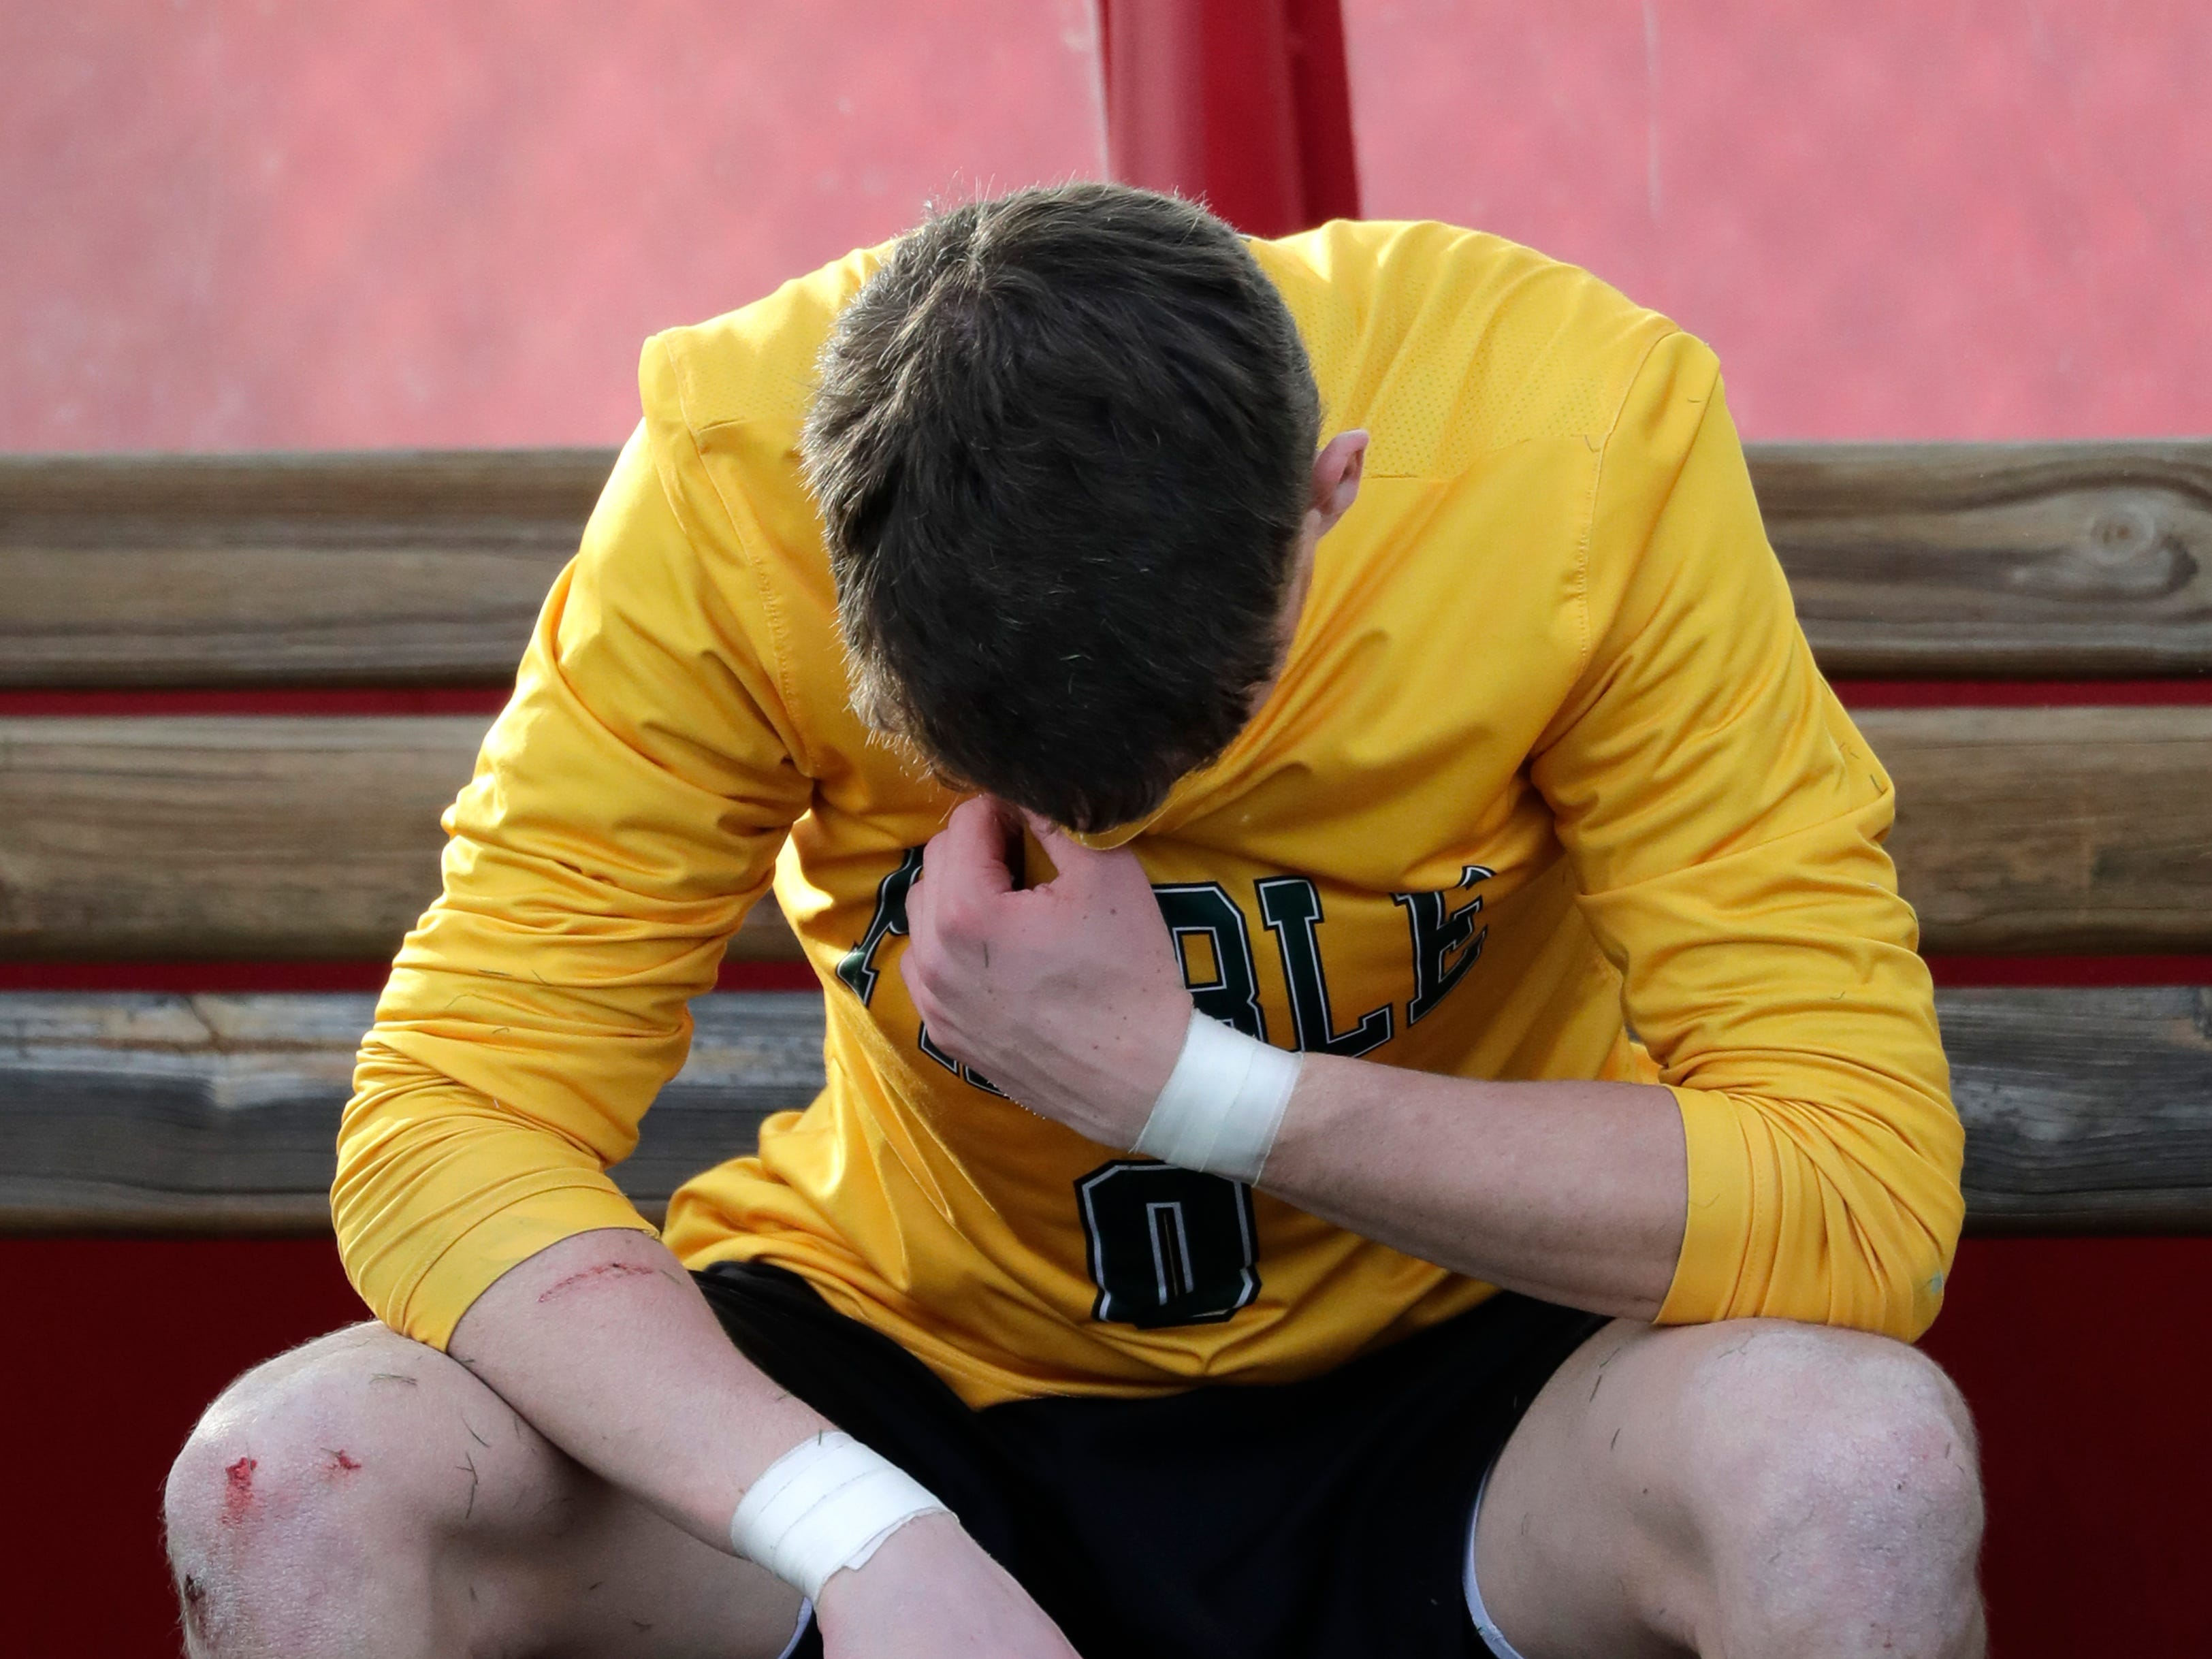 Green Bay Preble High School's goalie Noah Conard (0) takes a moment alone following a 3-0 loss against Hamilton High School during their WIAA Division 1 state semifinal boys soccer game Friday, November 2, 2018, at Uihlein Soccer Park in Milwaukee, Wis.